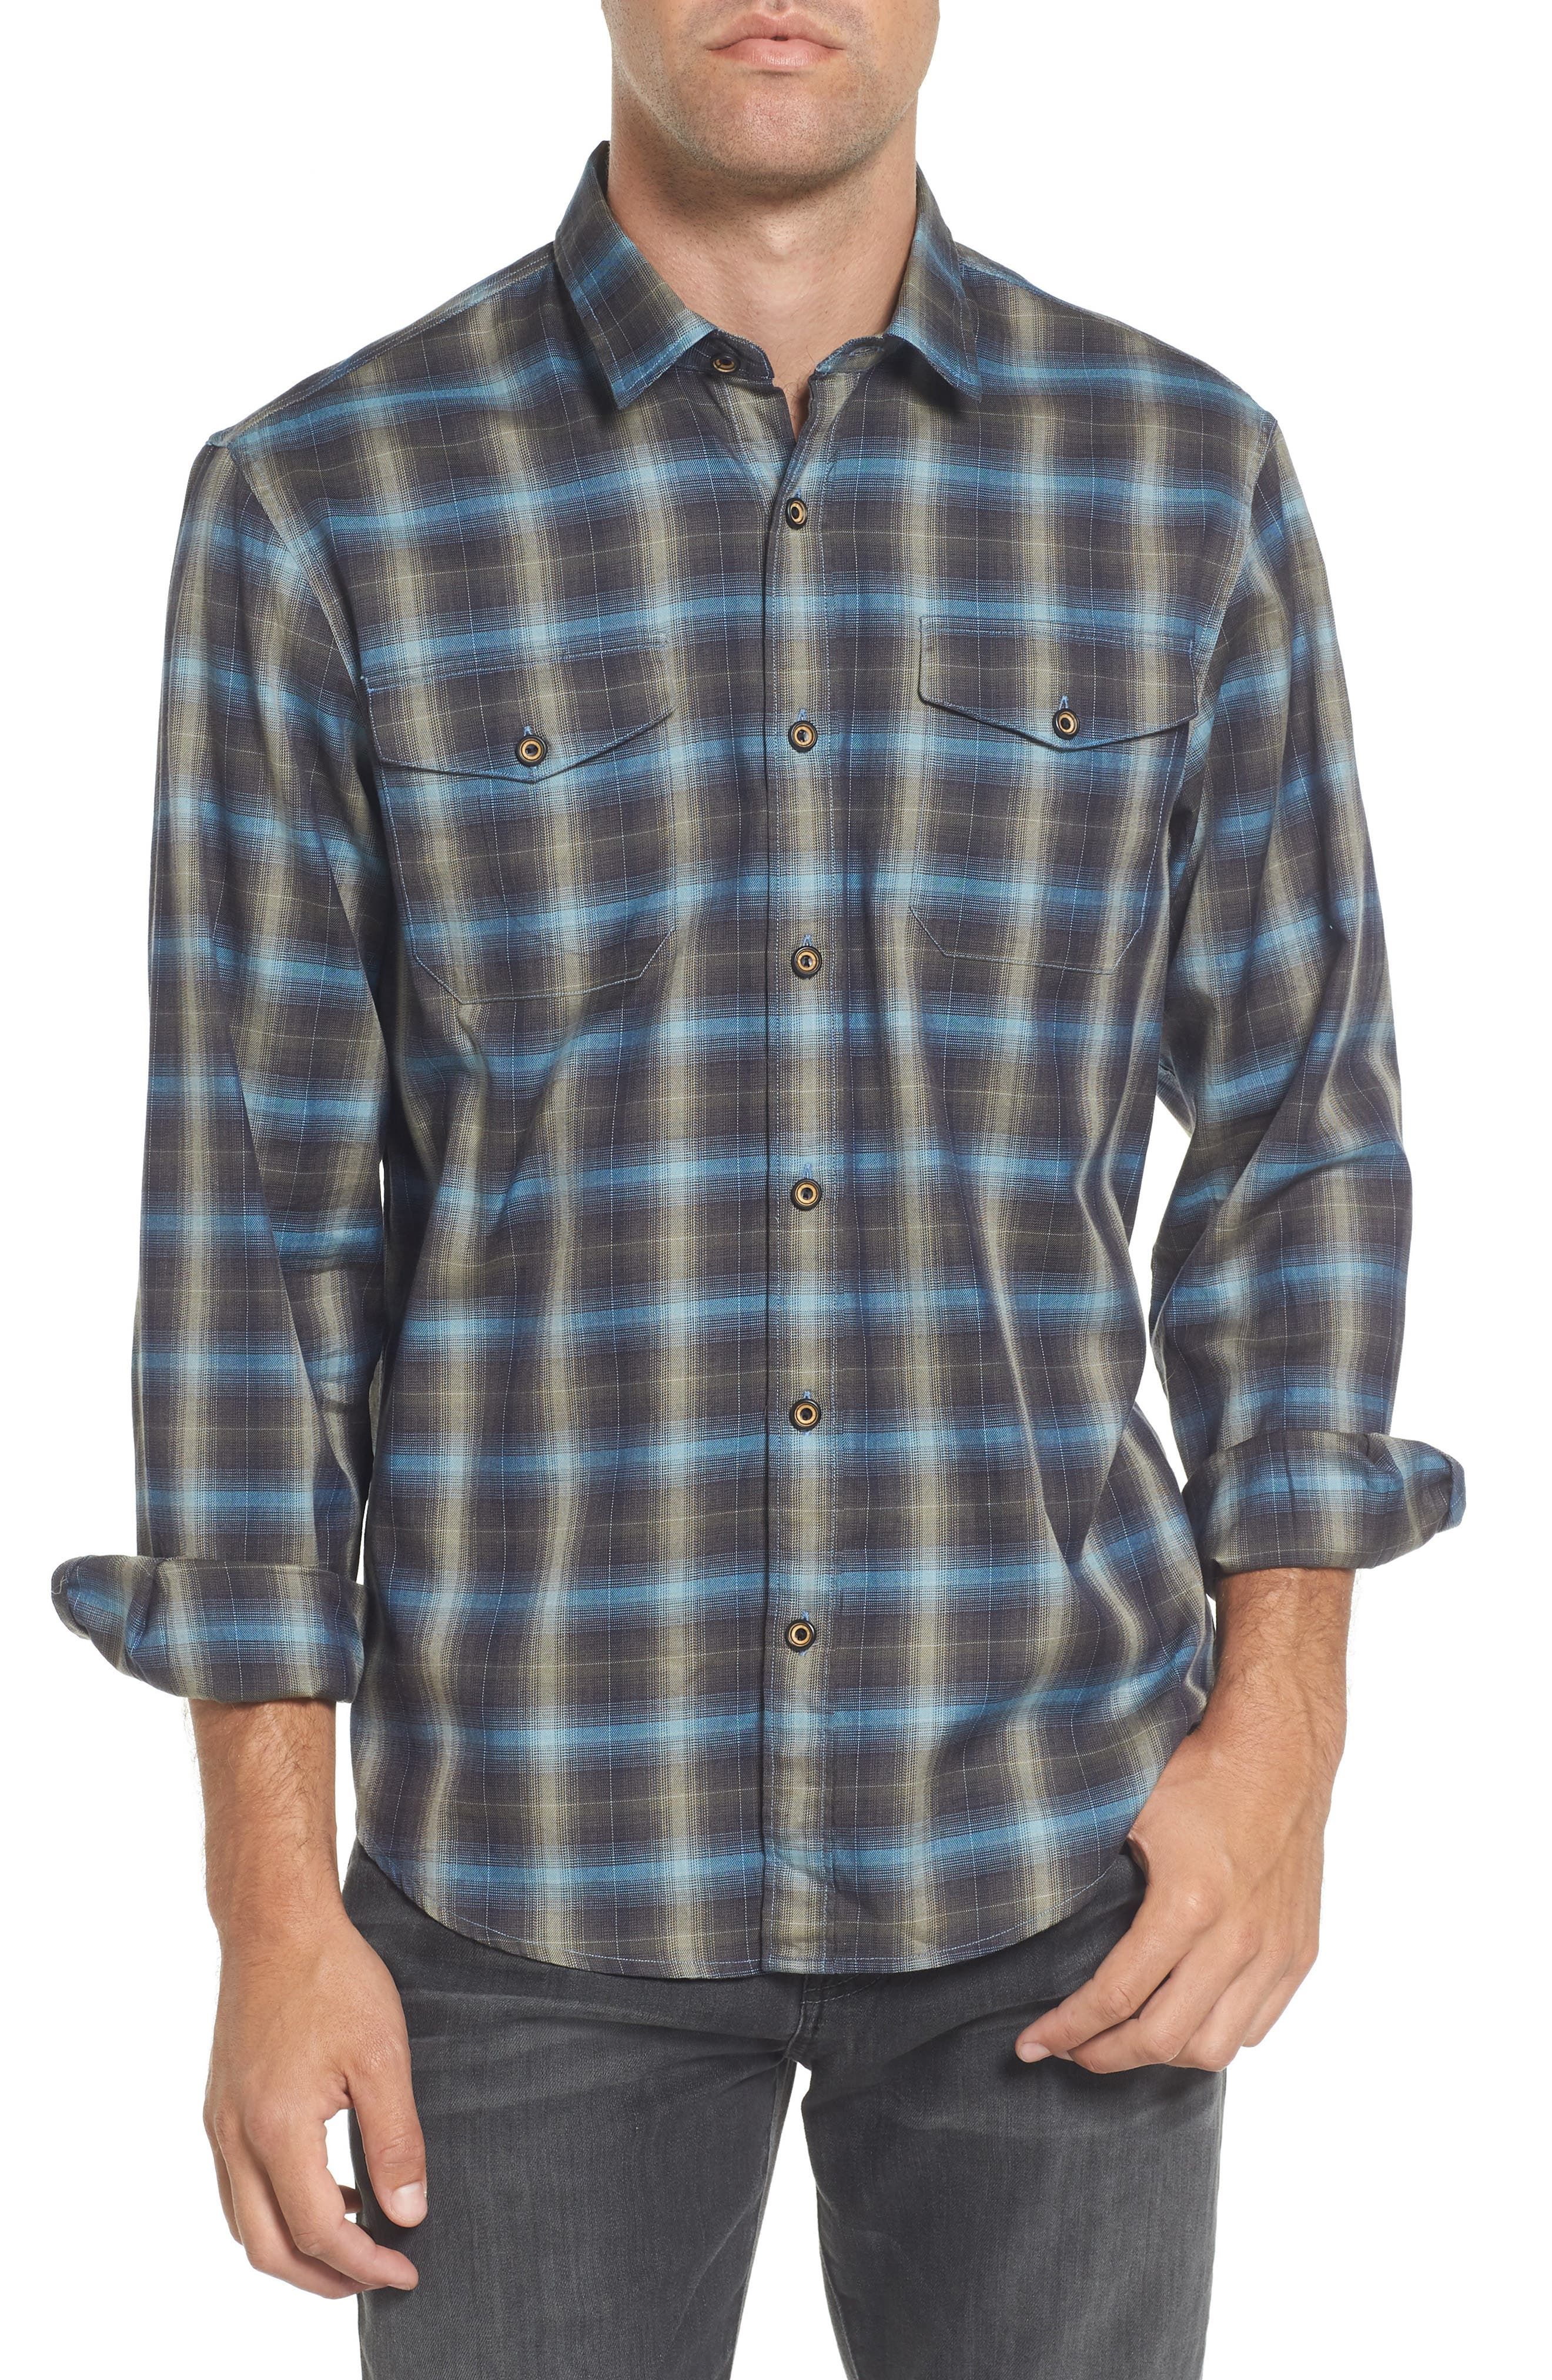 Walnut Plaid Garment Washed Flannel Shirt,                             Main thumbnail 1, color,                             Forest